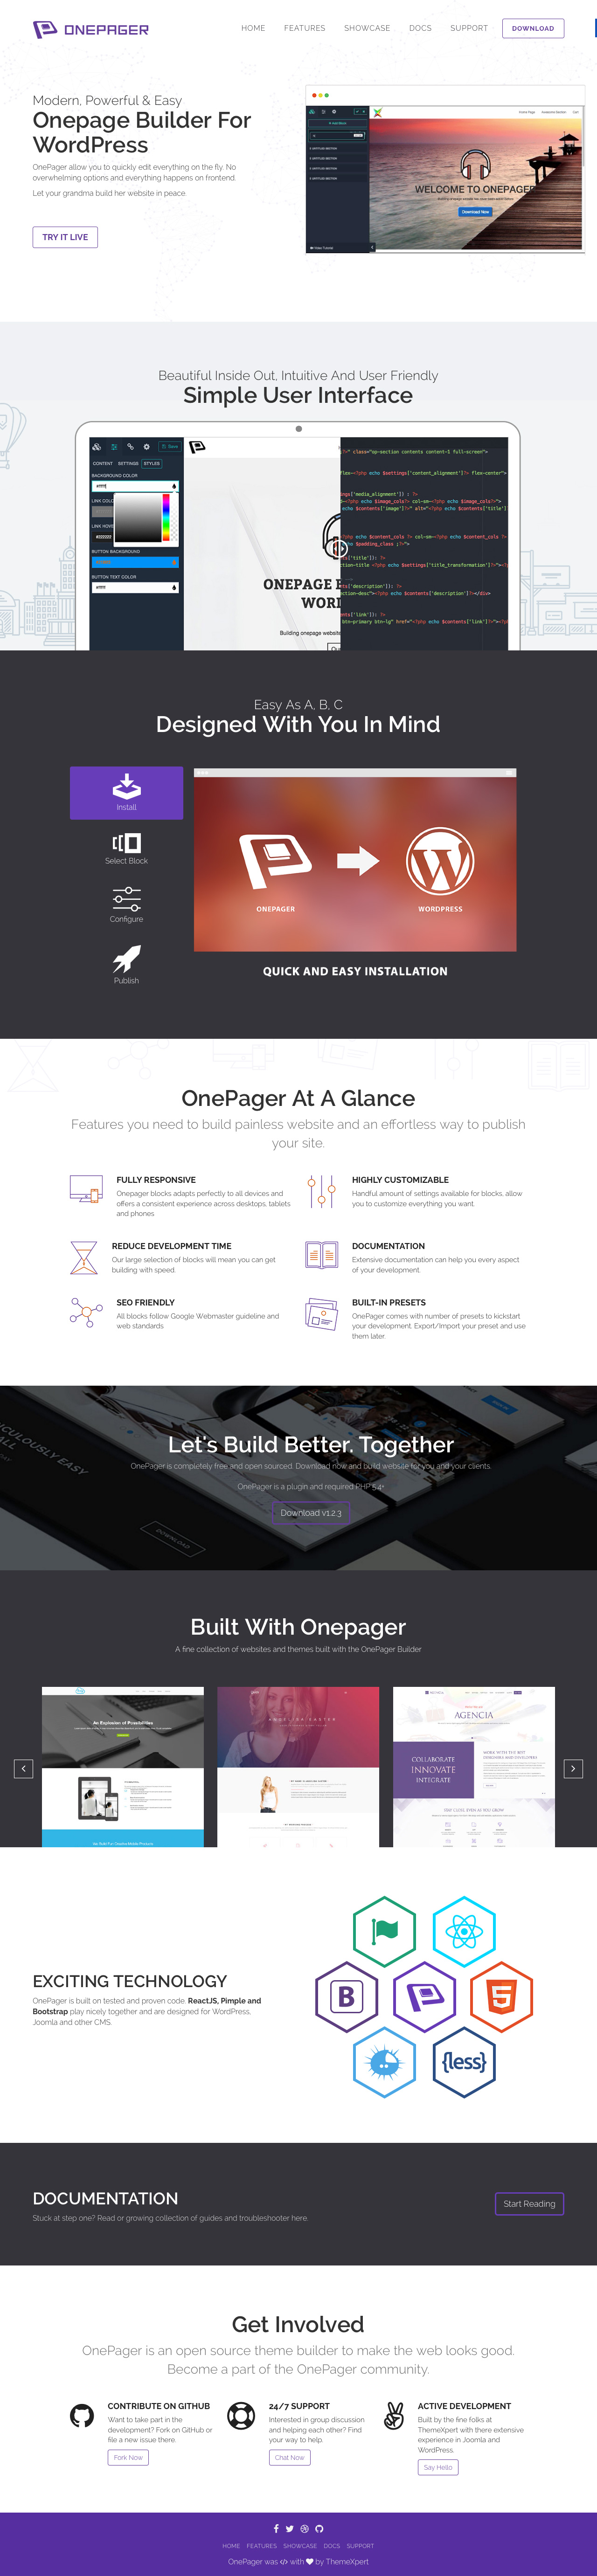 OnePage Builder Website Screenshot